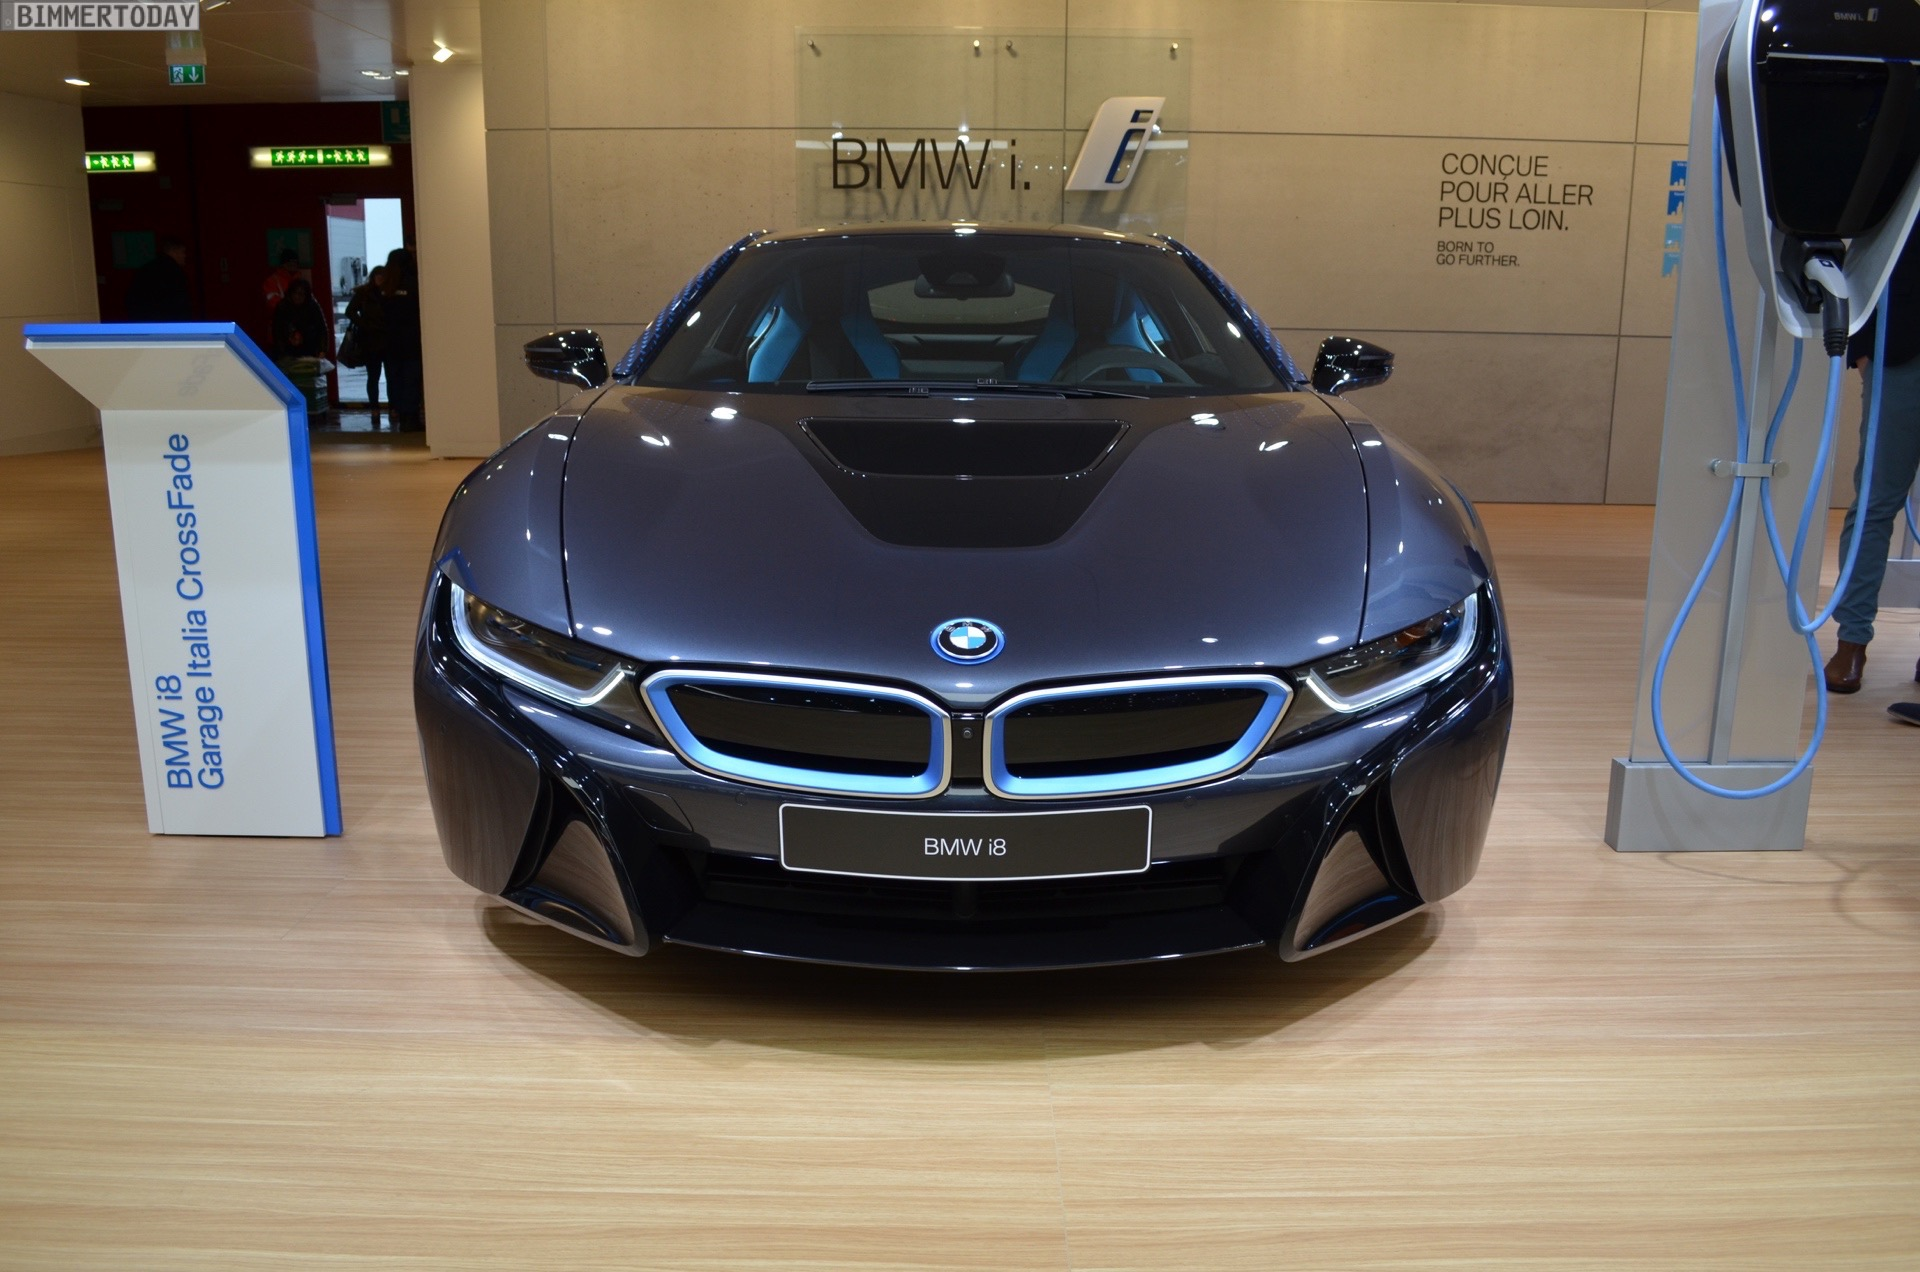 2017 Geneva Bmw I8 Crossfade Edition In The Garage Italia